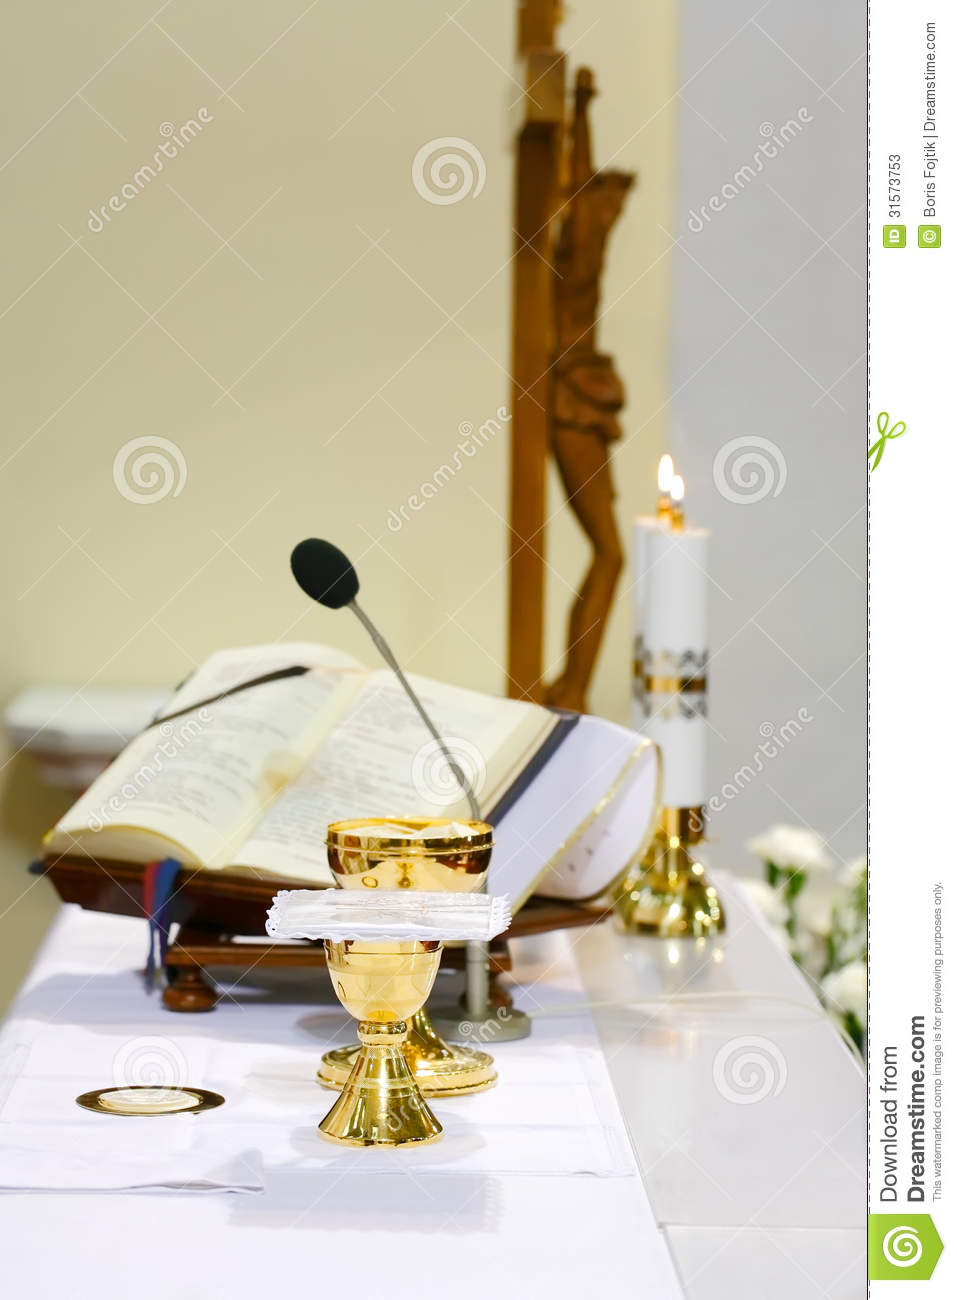 Catholic mass stock image image of alter hand goblet for Holy grail farcical aquatic ceremony